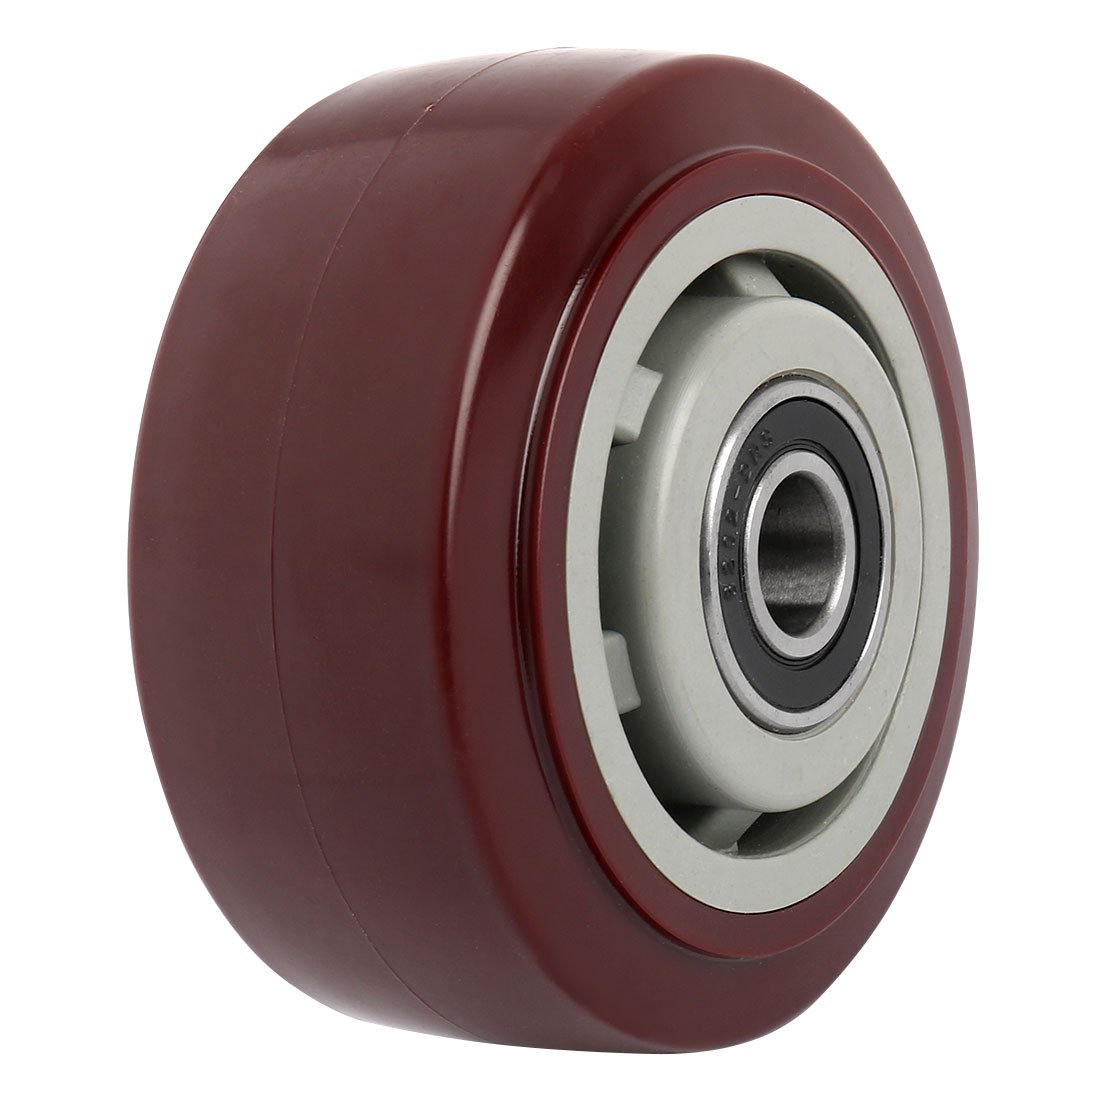 uxcell 4'' Polyurethane on Hard plastic Wheel, Replacement For Carts, Furniture, Dolly, Workbench, Wheel Only, Red